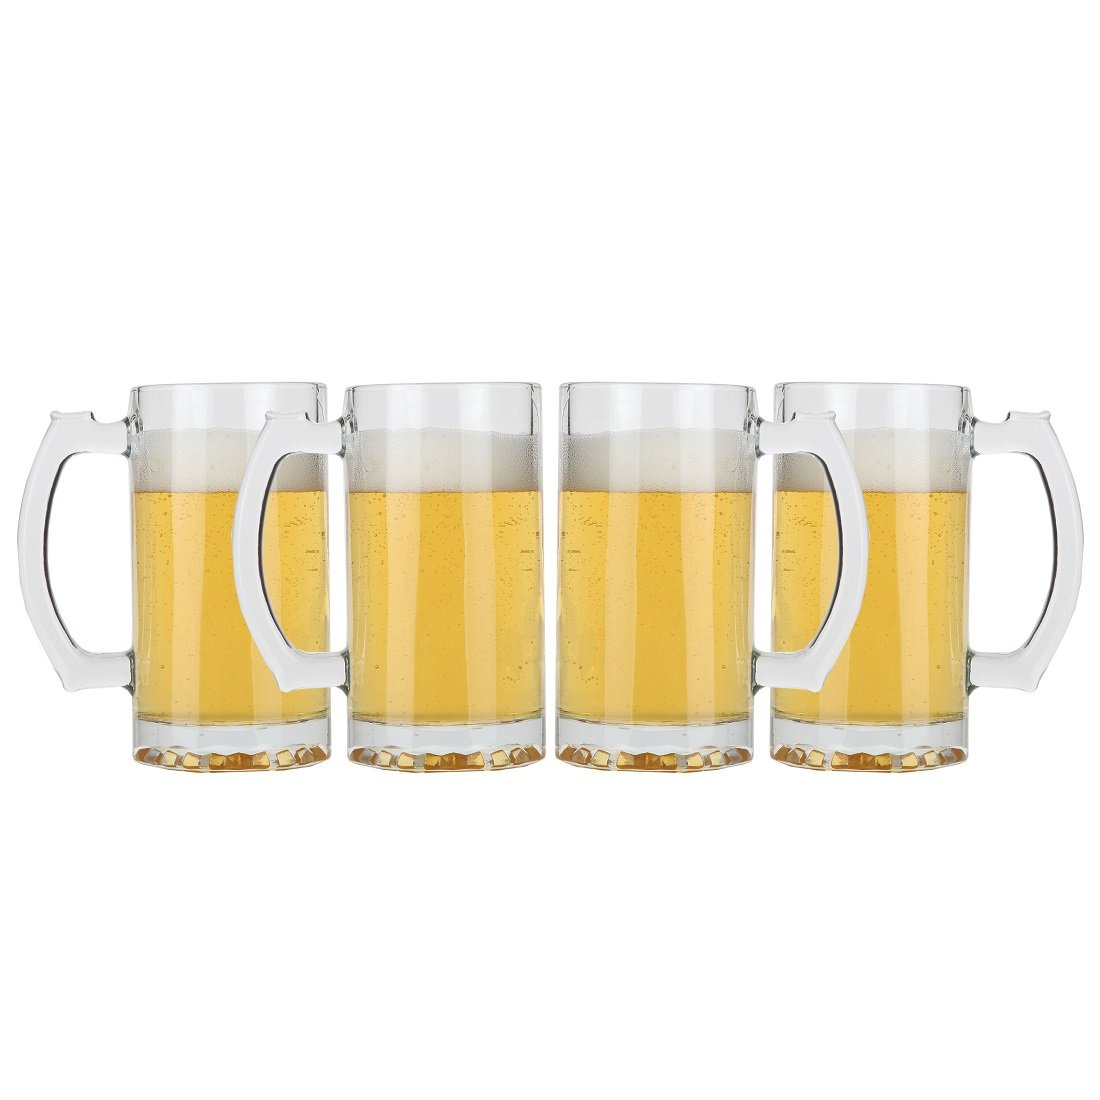 Lily's Home Classic Beer Stein Glasses, Thick Bottoms and Handles, Also Work Great for Root Beer Floats or Lemonade (16 oz. Each, Set of 4) SW1049